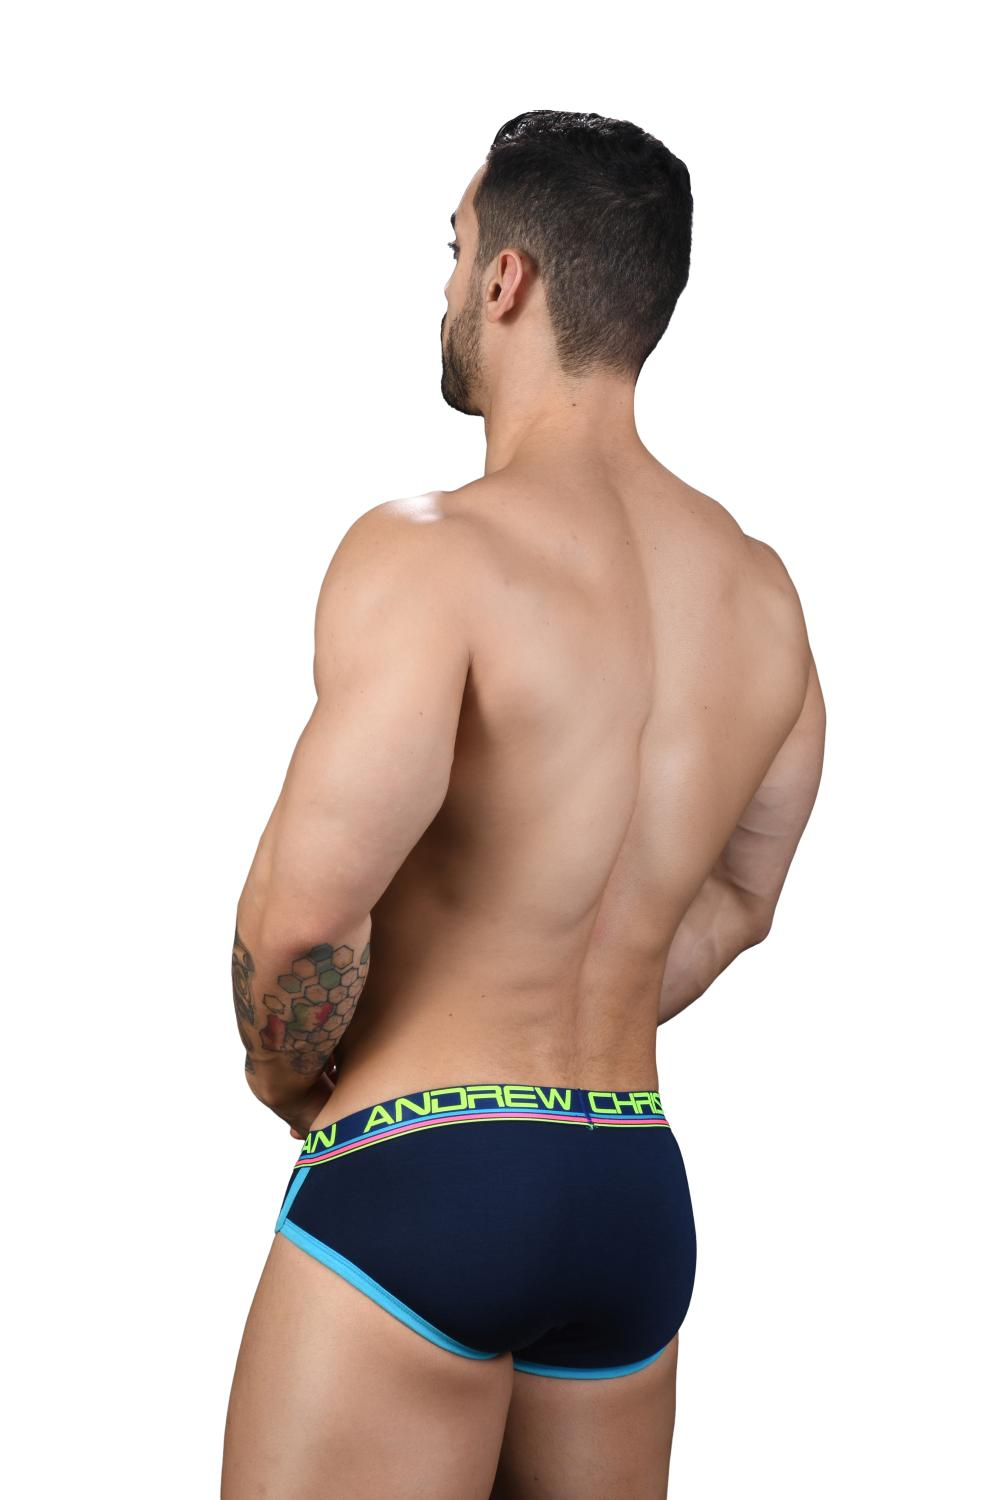 CoolFlex Modal Slipy ANDREW CHRISTIAN s Pushup kapsou Show-It Navy5